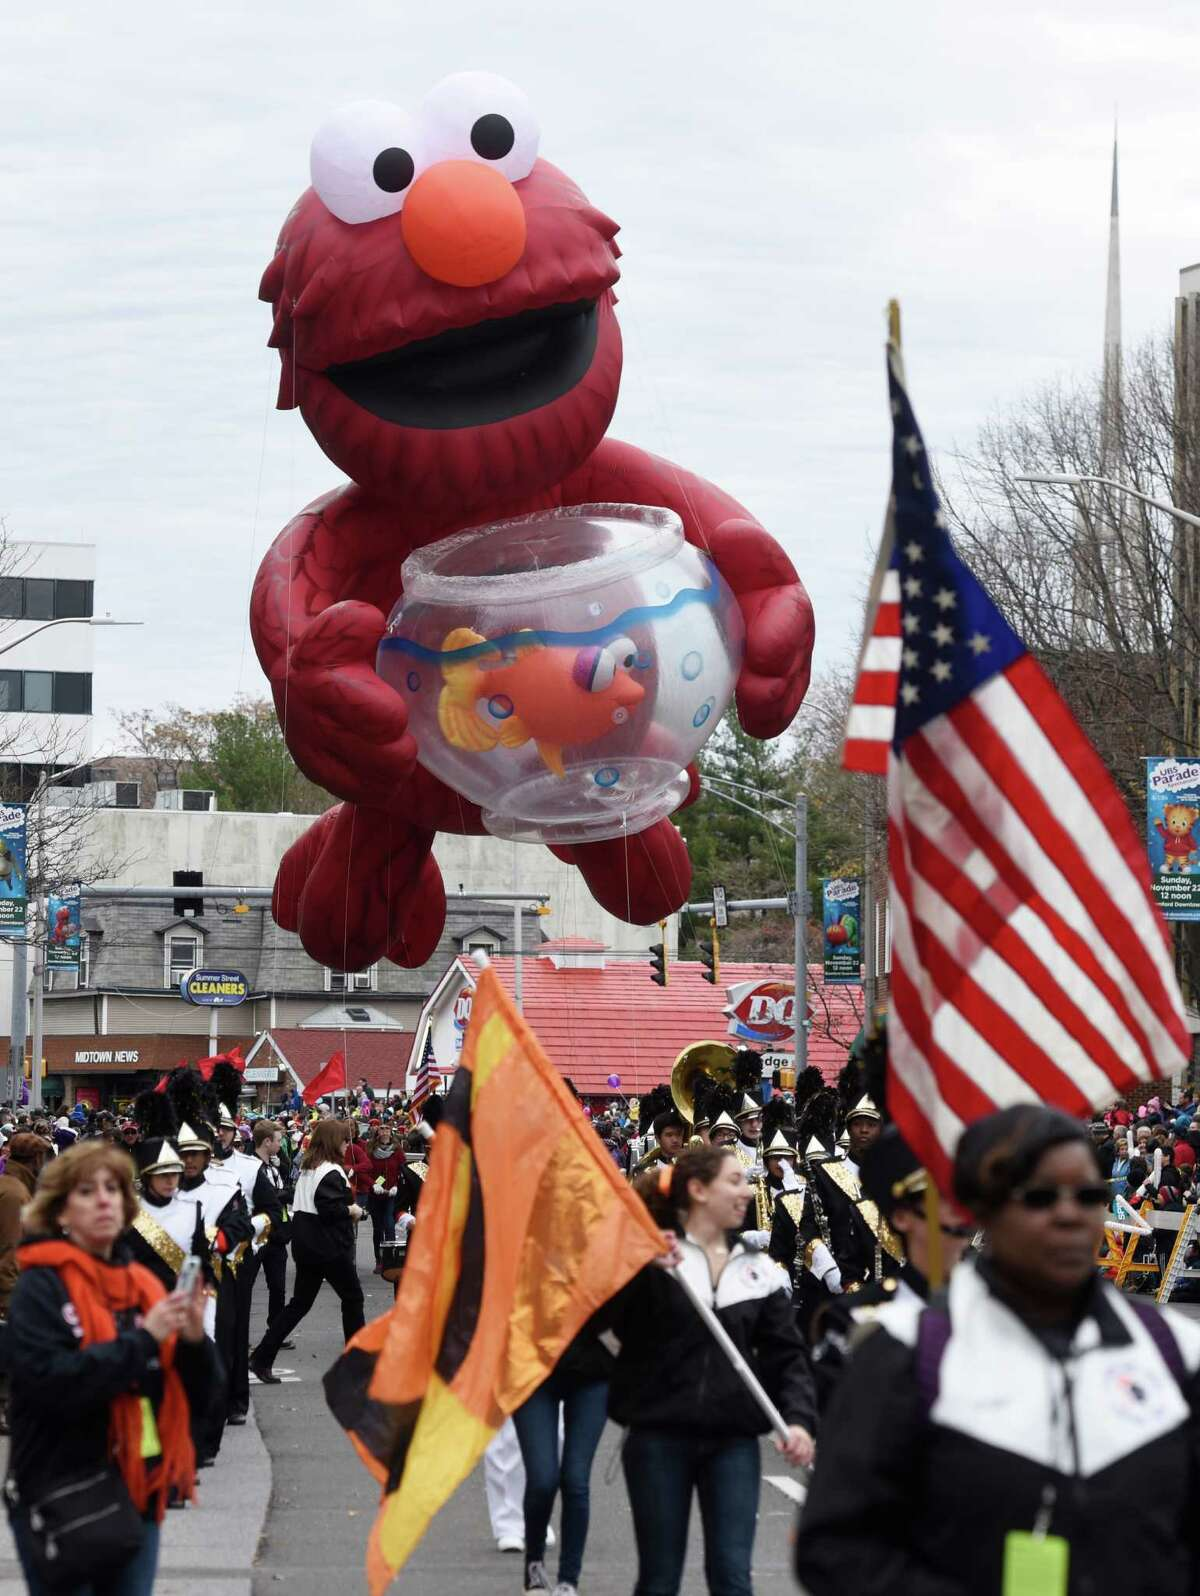 A giant helium Elmo balloon floats down the street during the UBS Parade Spectaular in downtown Stamford, Conn. Sunday, Nov. 22, 2015. The annual balloon parade, presented by Stamford Town Center and the Stamford Advocate and Hearst CT Media, featured giant helium balloon characters, award-winning marching bands and floats.